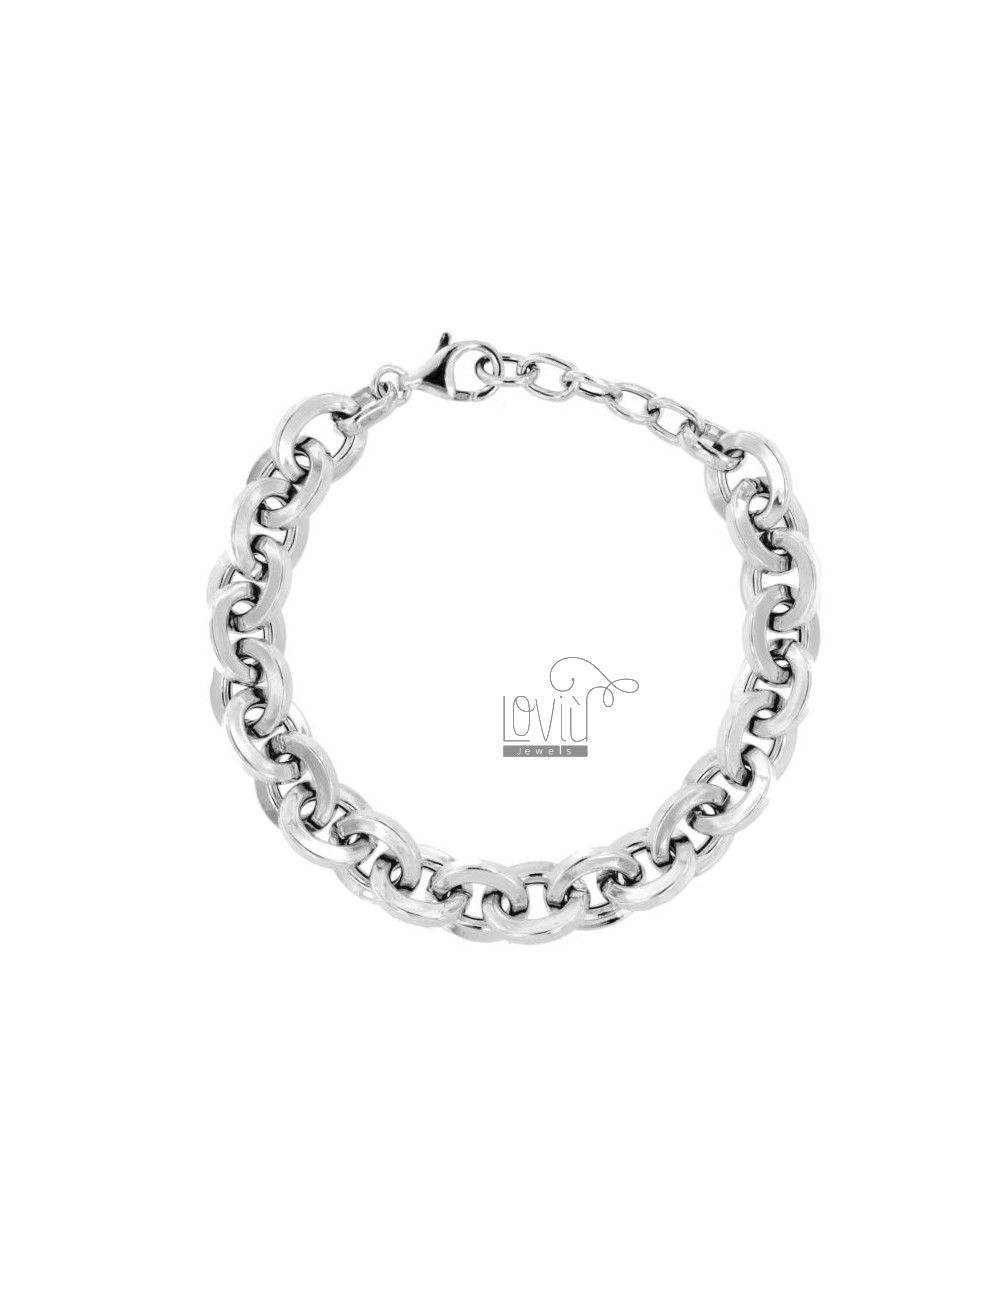 BRACELET SQUARE BARREL SQUARE MM 11 IN SILVER RHODIUM TIT 925 CM 19-21